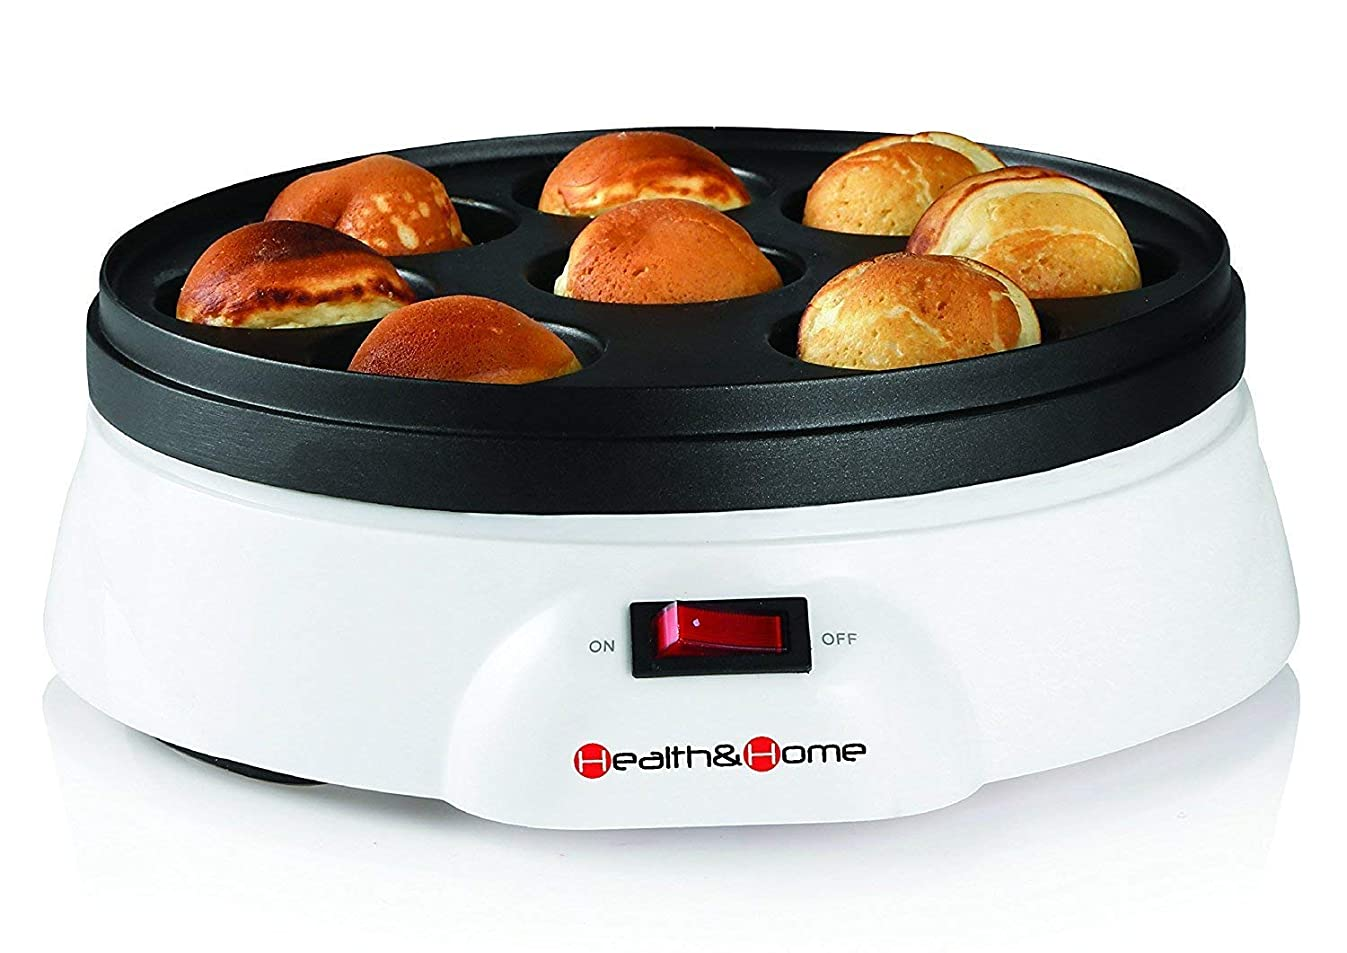 Health and Home Electric Takoyaki Octopus& Pan 8- Balls Makers Donut Holes and Cake Pops with Non-stick Surface